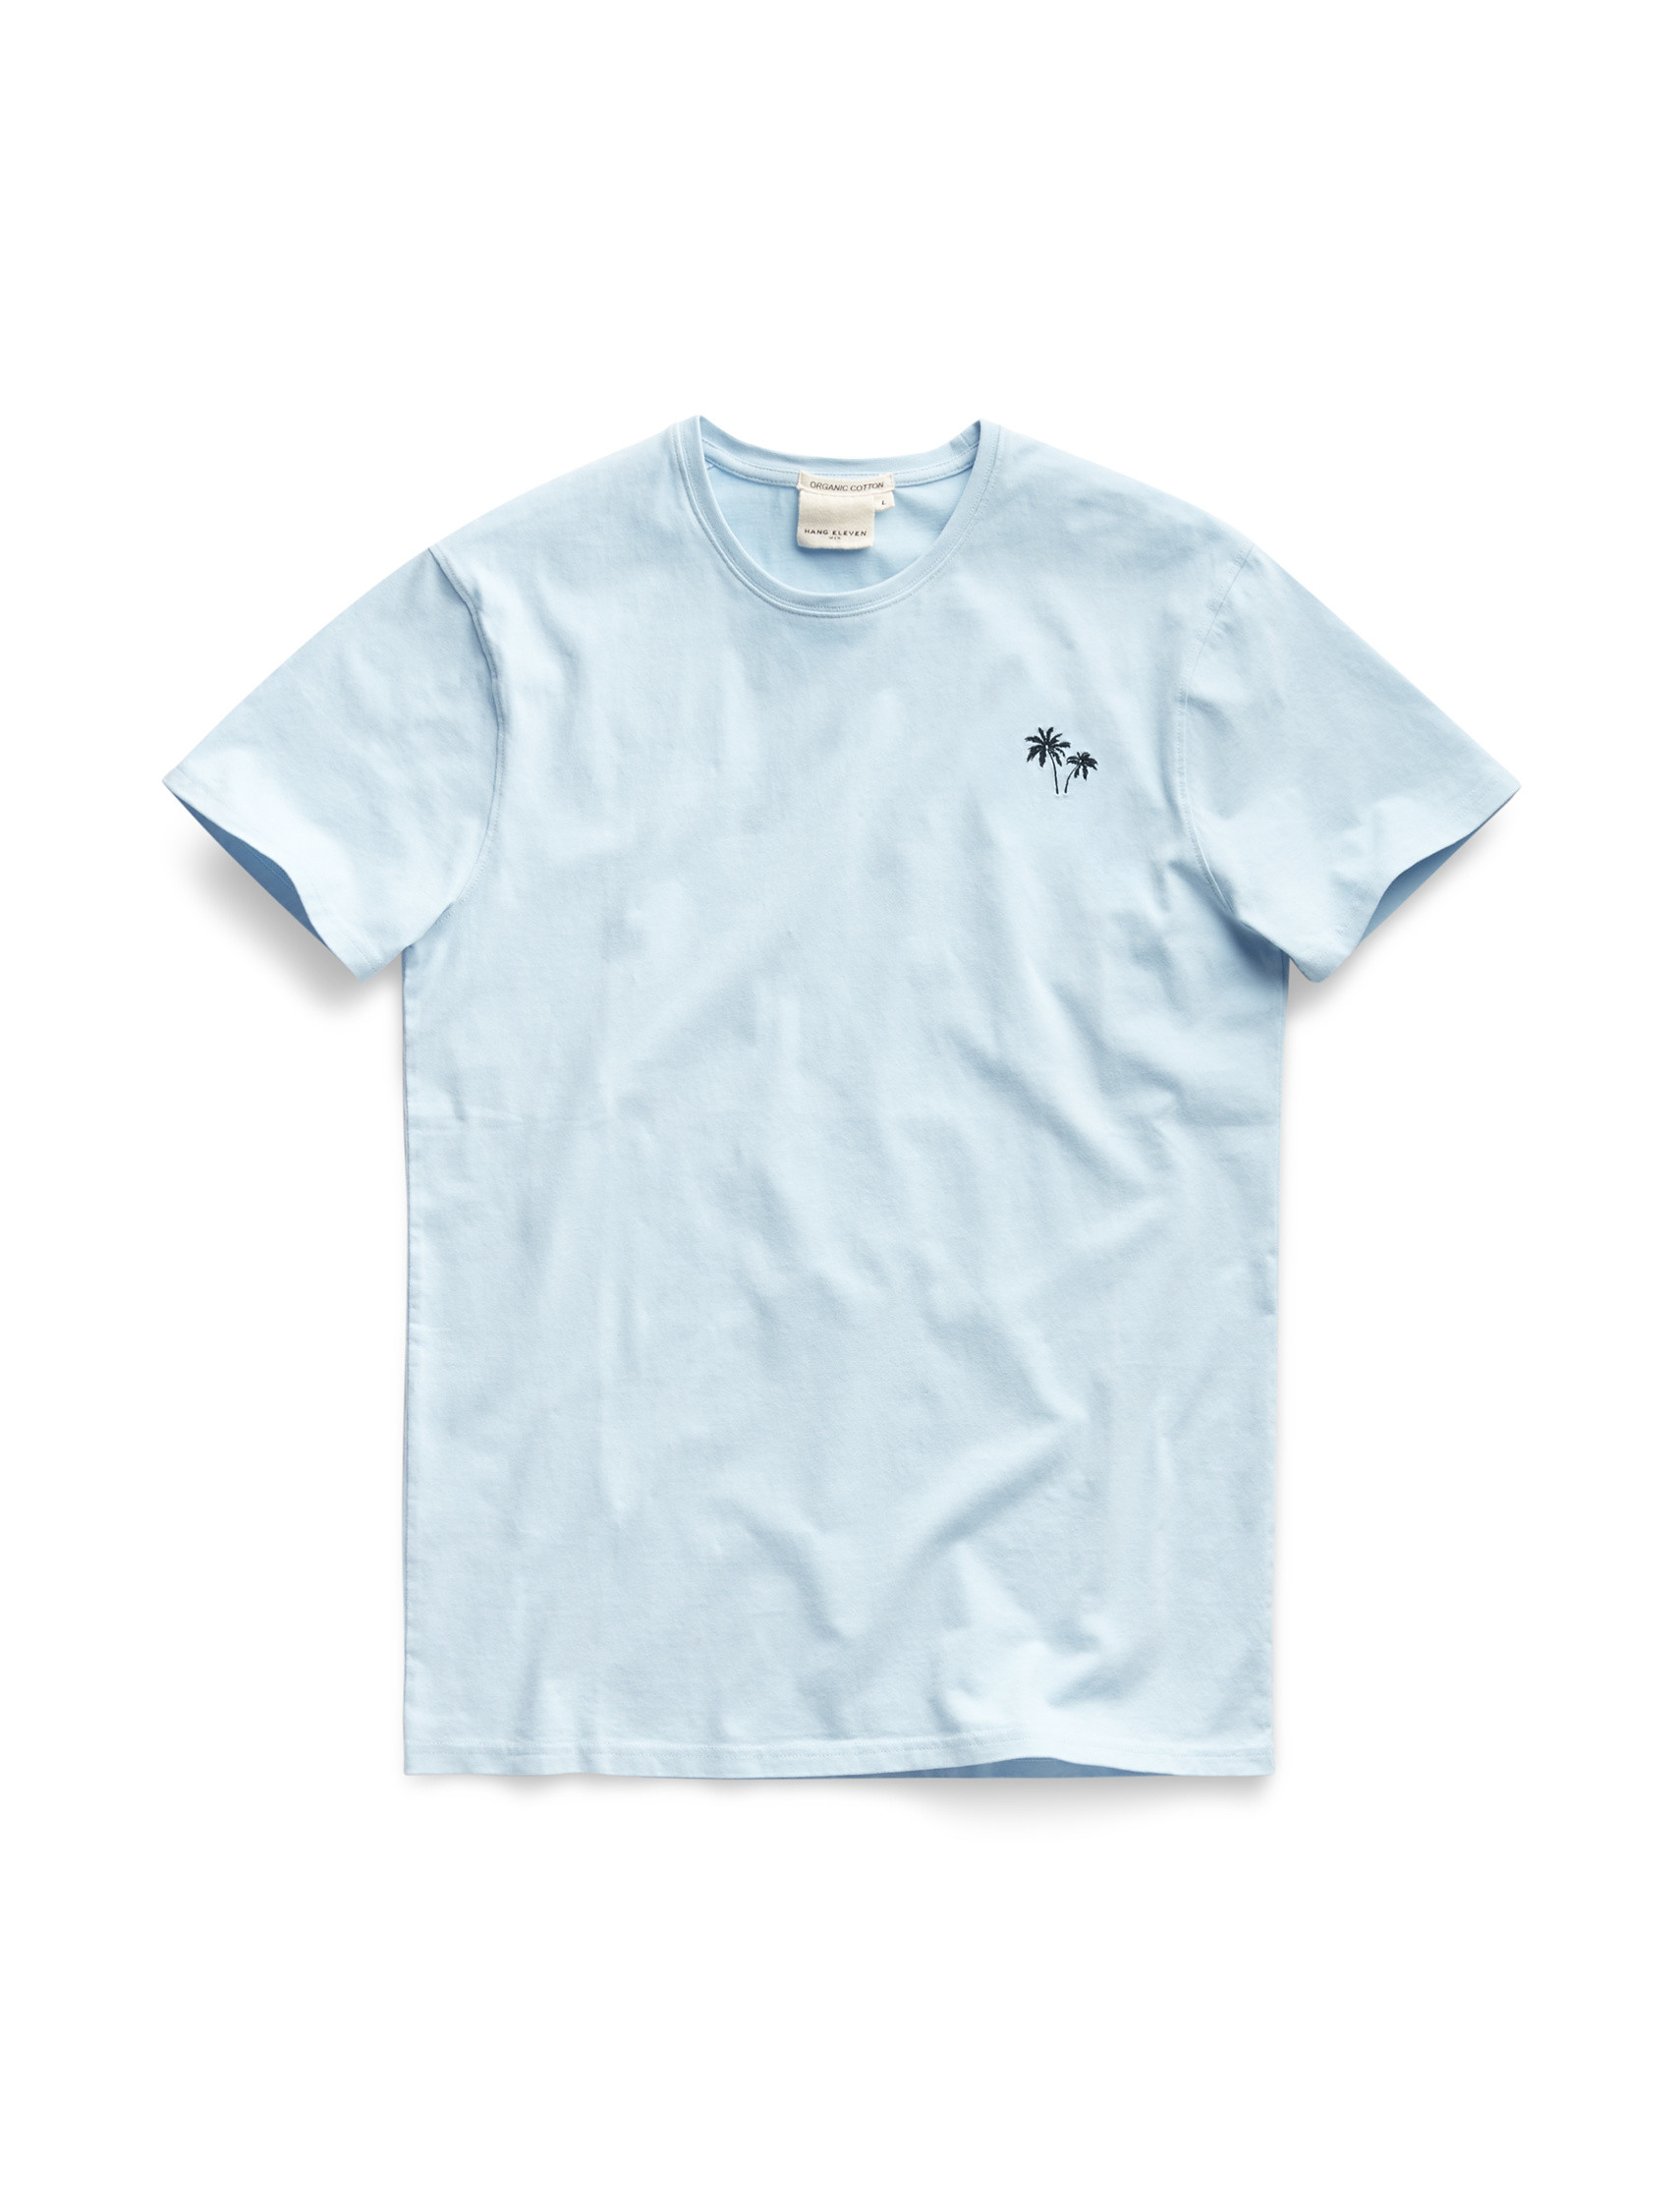 Palmtree Tee - Light Blue